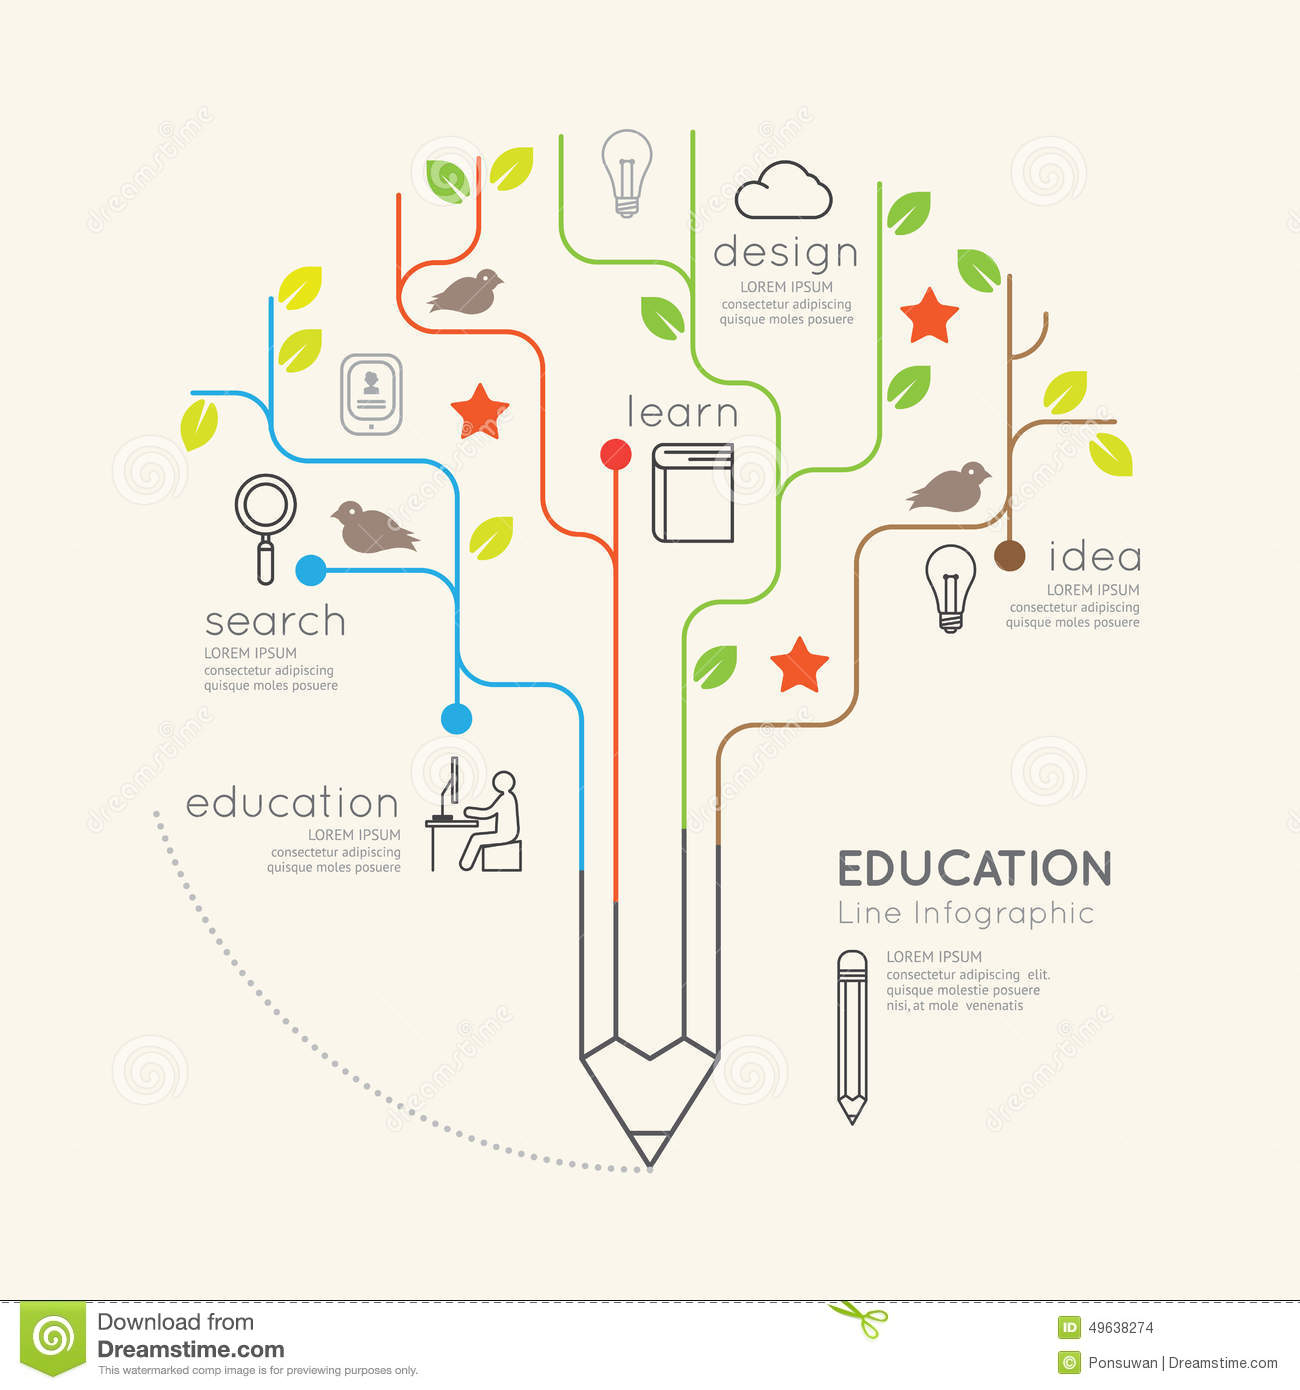 Graphic Site Map: Flat Linear Infographic Education Pencil Tree Outline